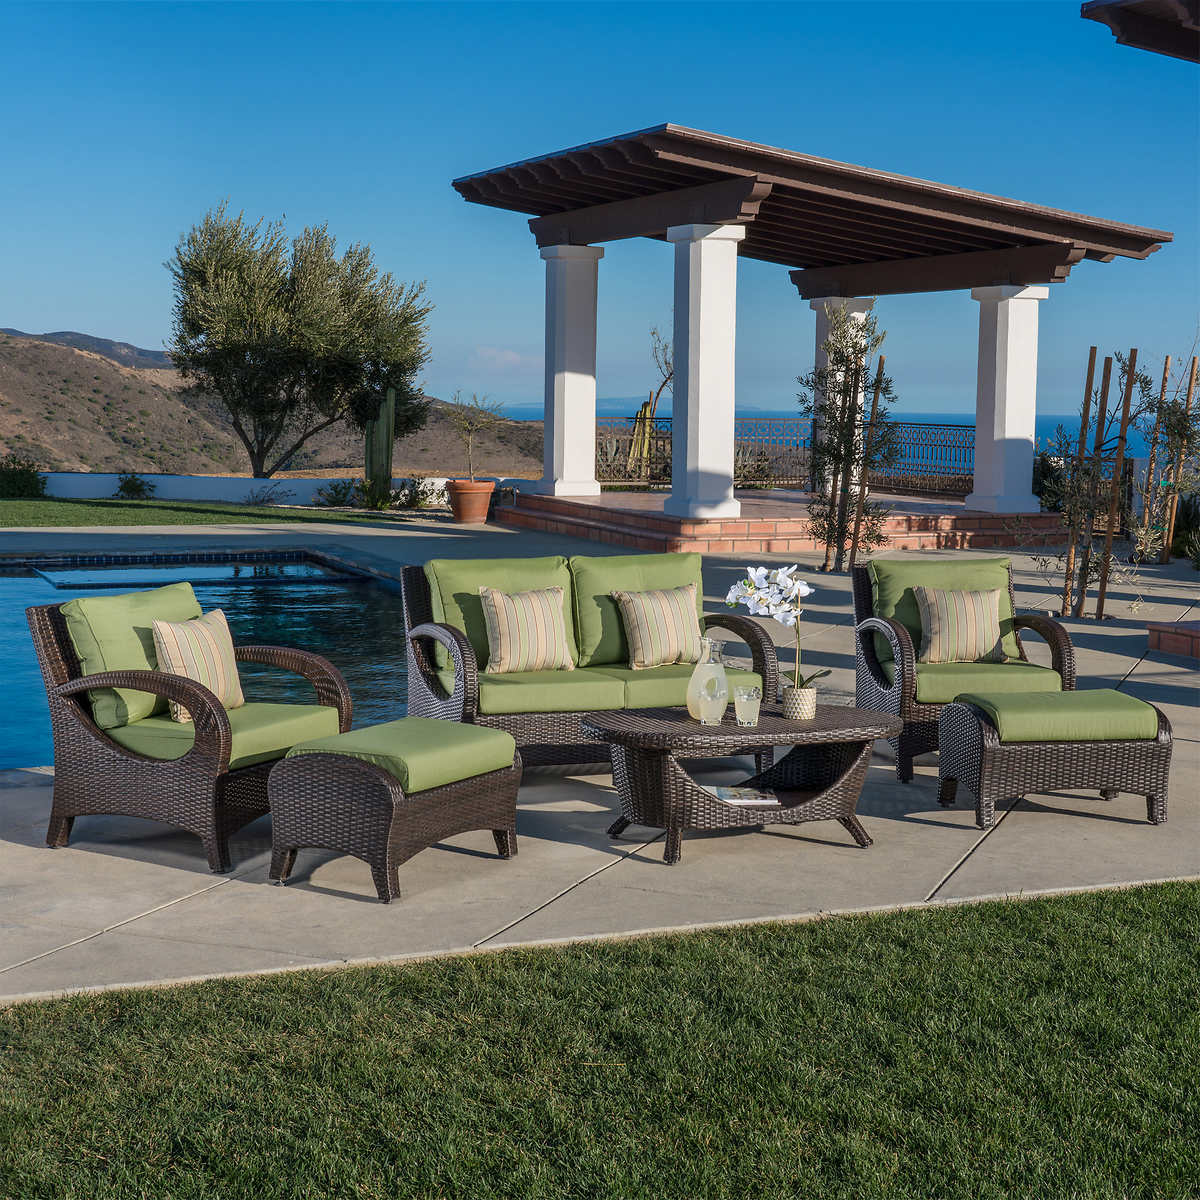 Vermont 6-piece Seating Set - Top Selling Patio Costco